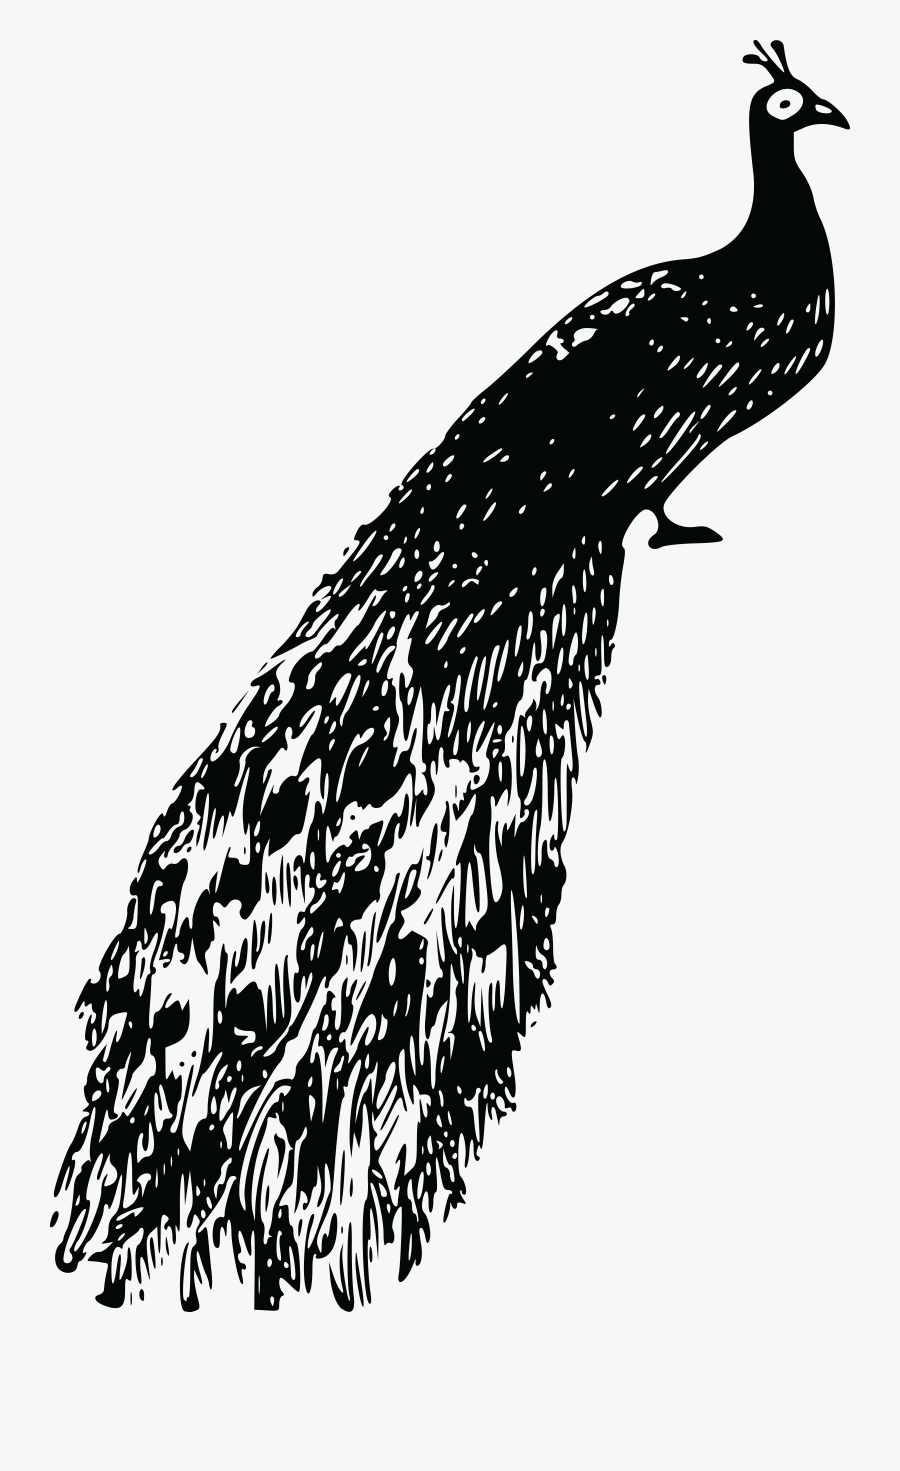 Free Clipart Of A Peacock - Peacock Clipart Black And White Png, Transparent Clipart